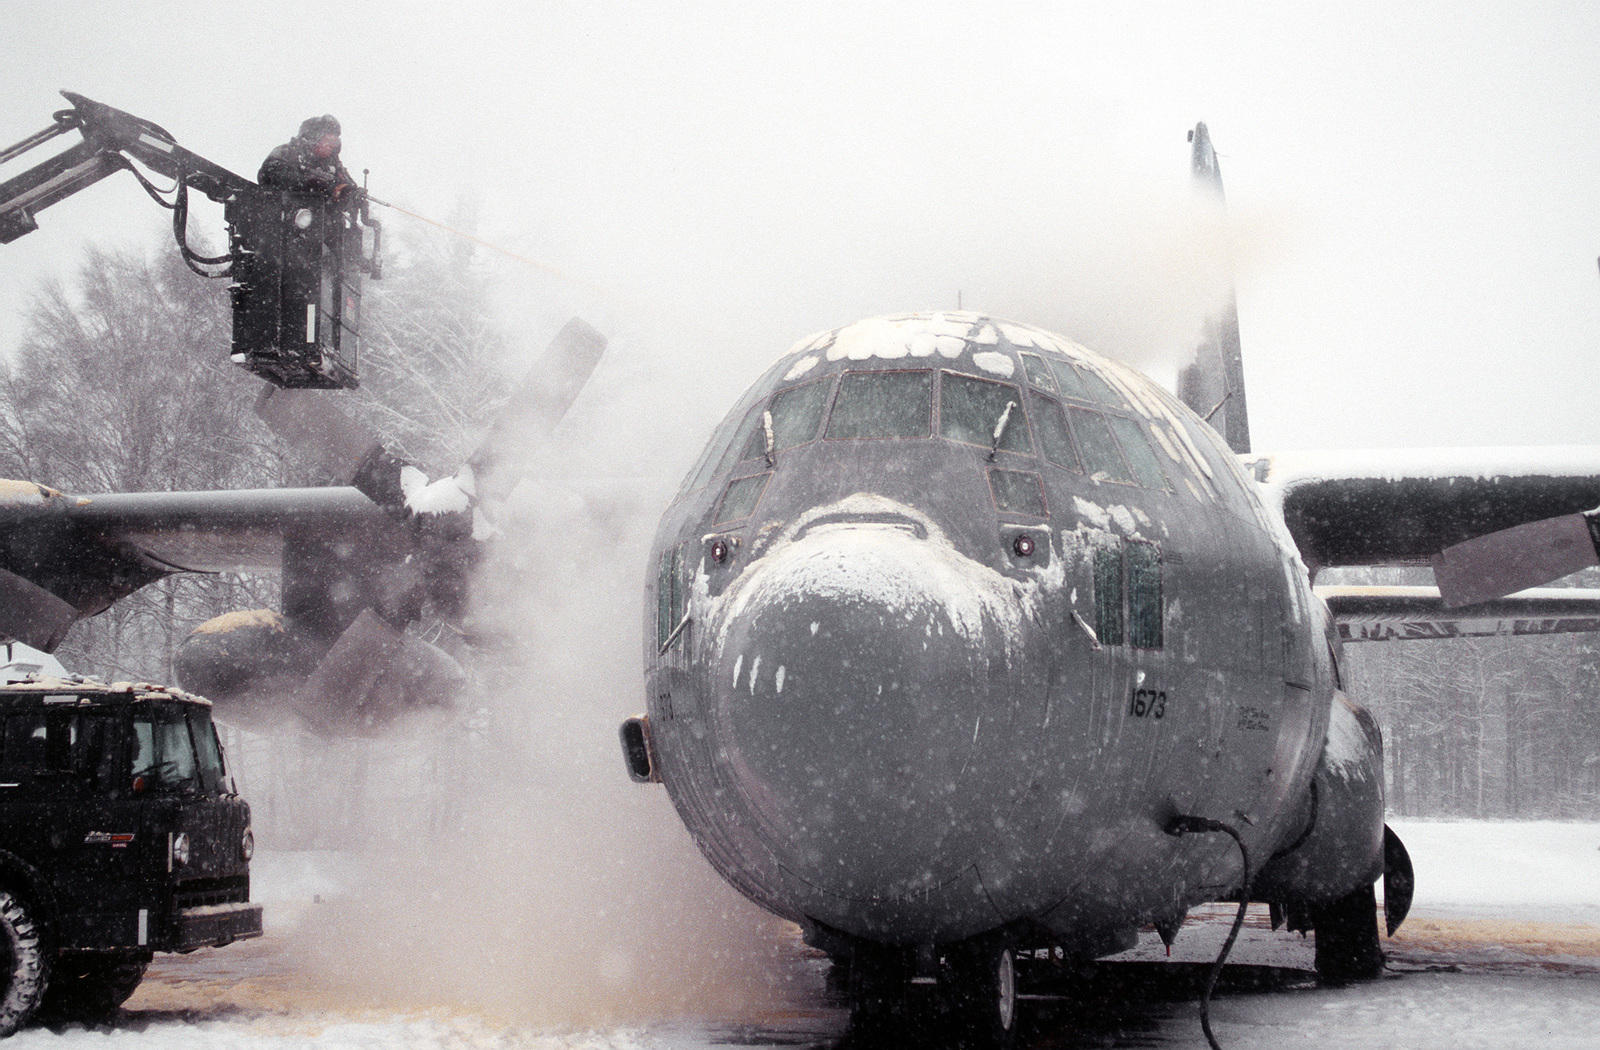 Working under frigid conditions, crew chief and ground support personnel de-ice a 40th Airlift Squadron (AS), C-130H taxies on the snow covered ramp at this United States Air Force Europe (USAFE) base. The 40th AS is assigned to the 7th Wing, Dyess Air Force Base, Texas and is deployed to Ramstein to support Operations Joint Endeavor and Joint Guard from 4 Dec. 1996 to 23 Jan. 1997.Exact Date Shot Unknown